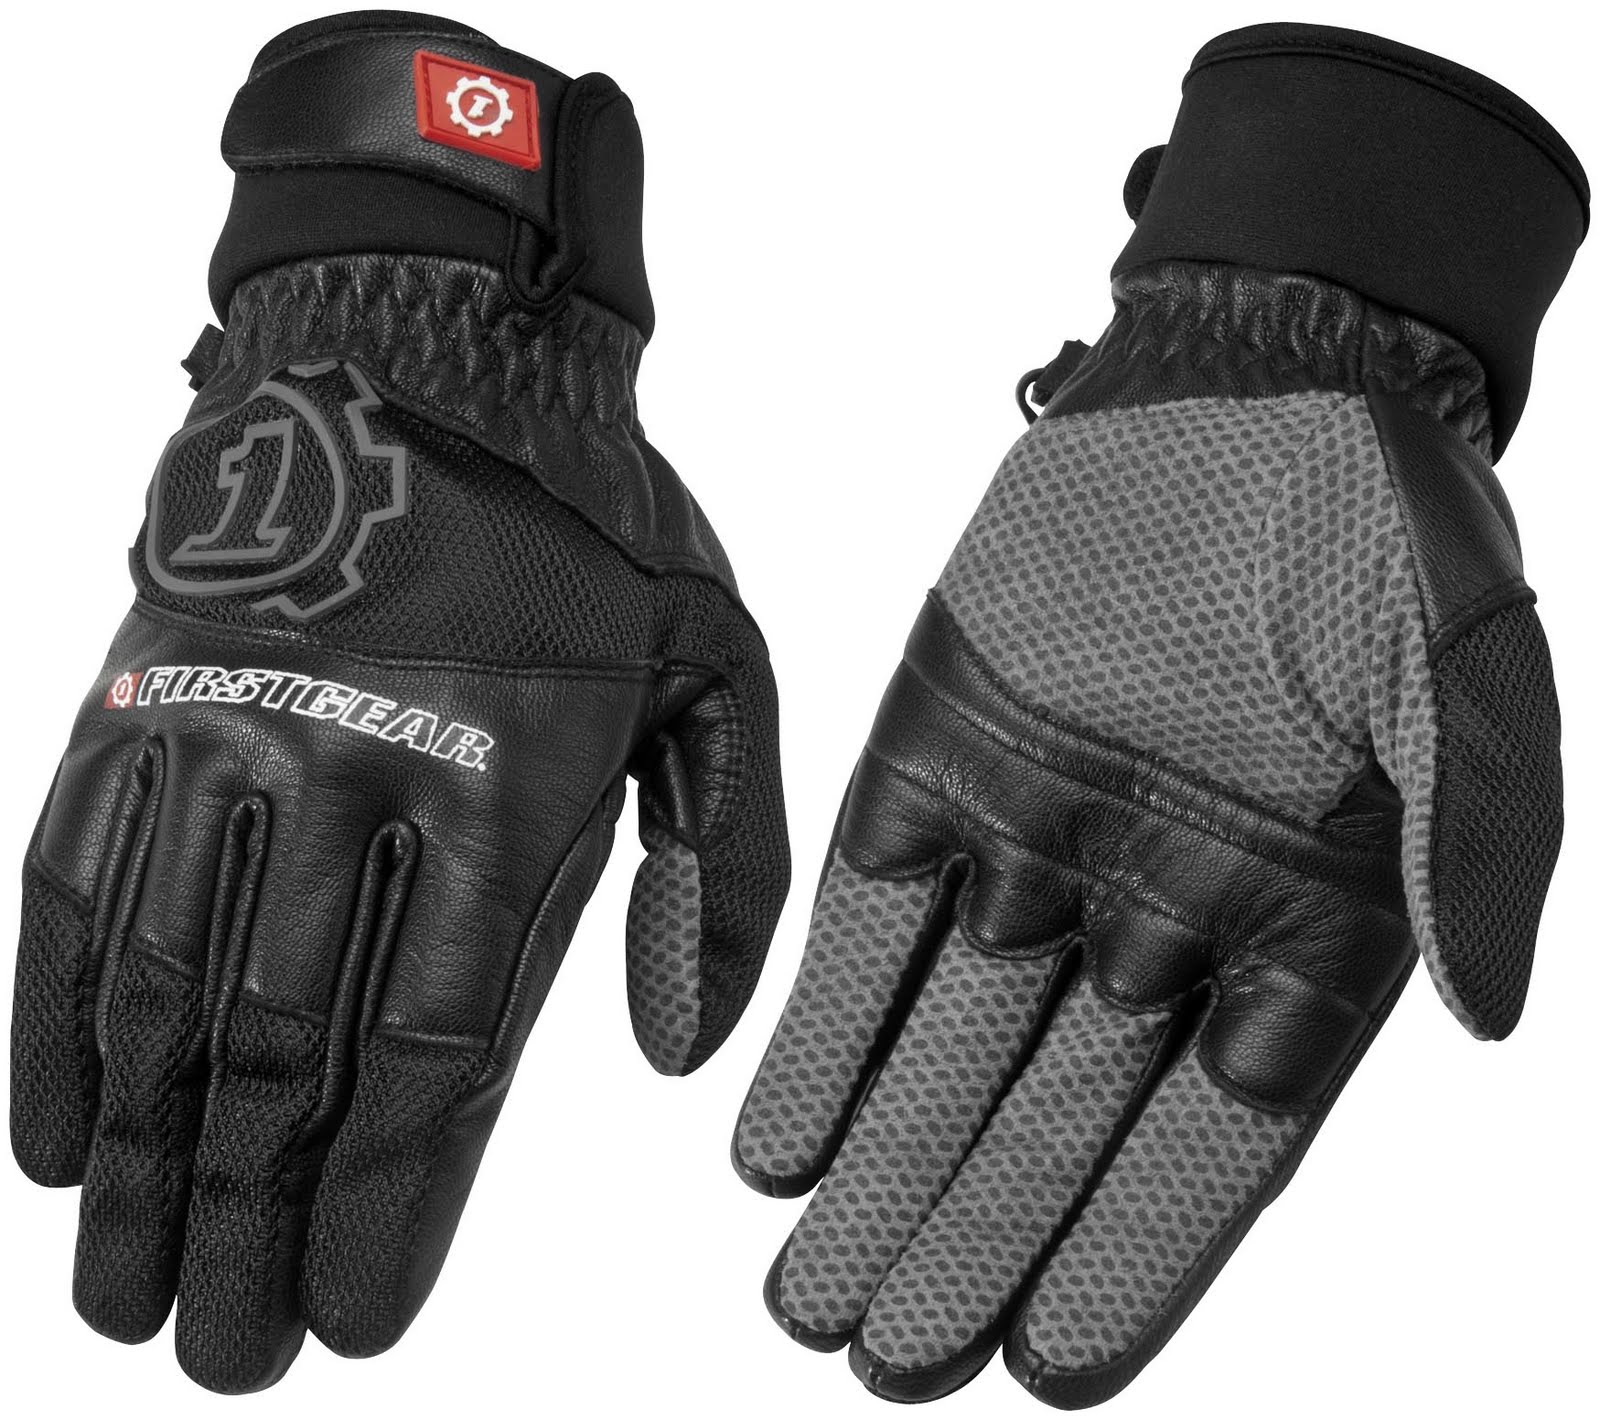 Icon justice leather motorcycle gloves - Motorcycle Jackets Helmets And Gear Reviews